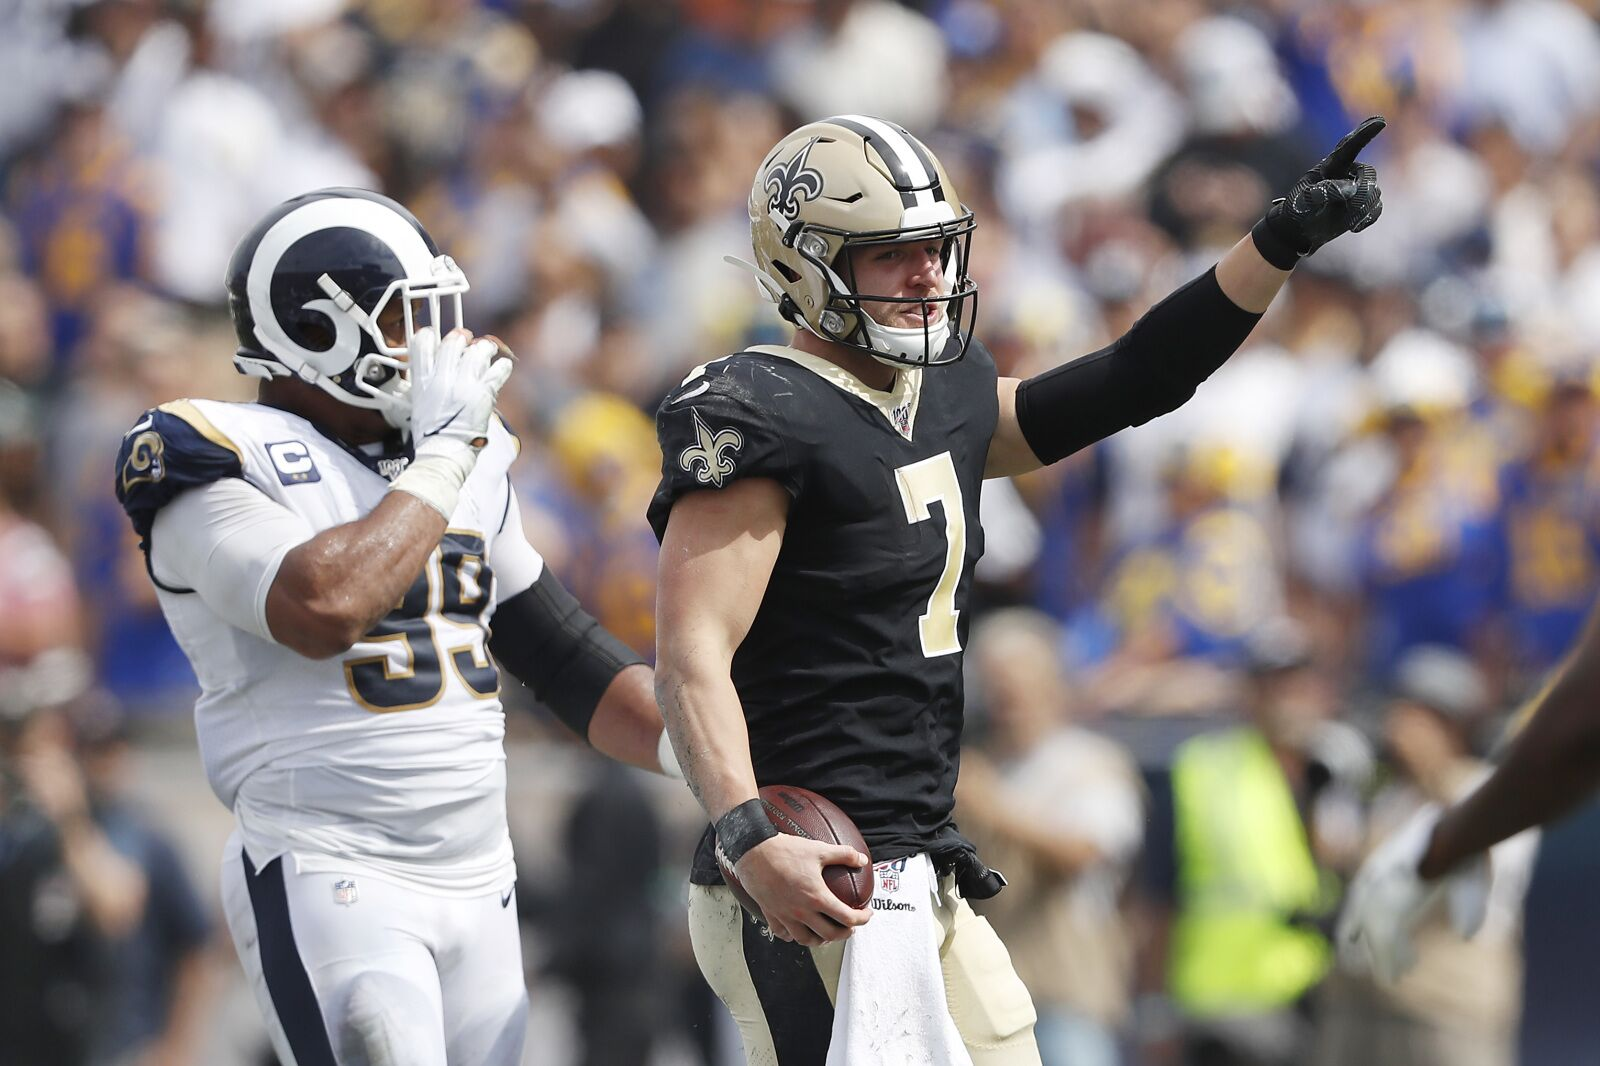 Will Taysom Hill start over Teddy Bridgewater?